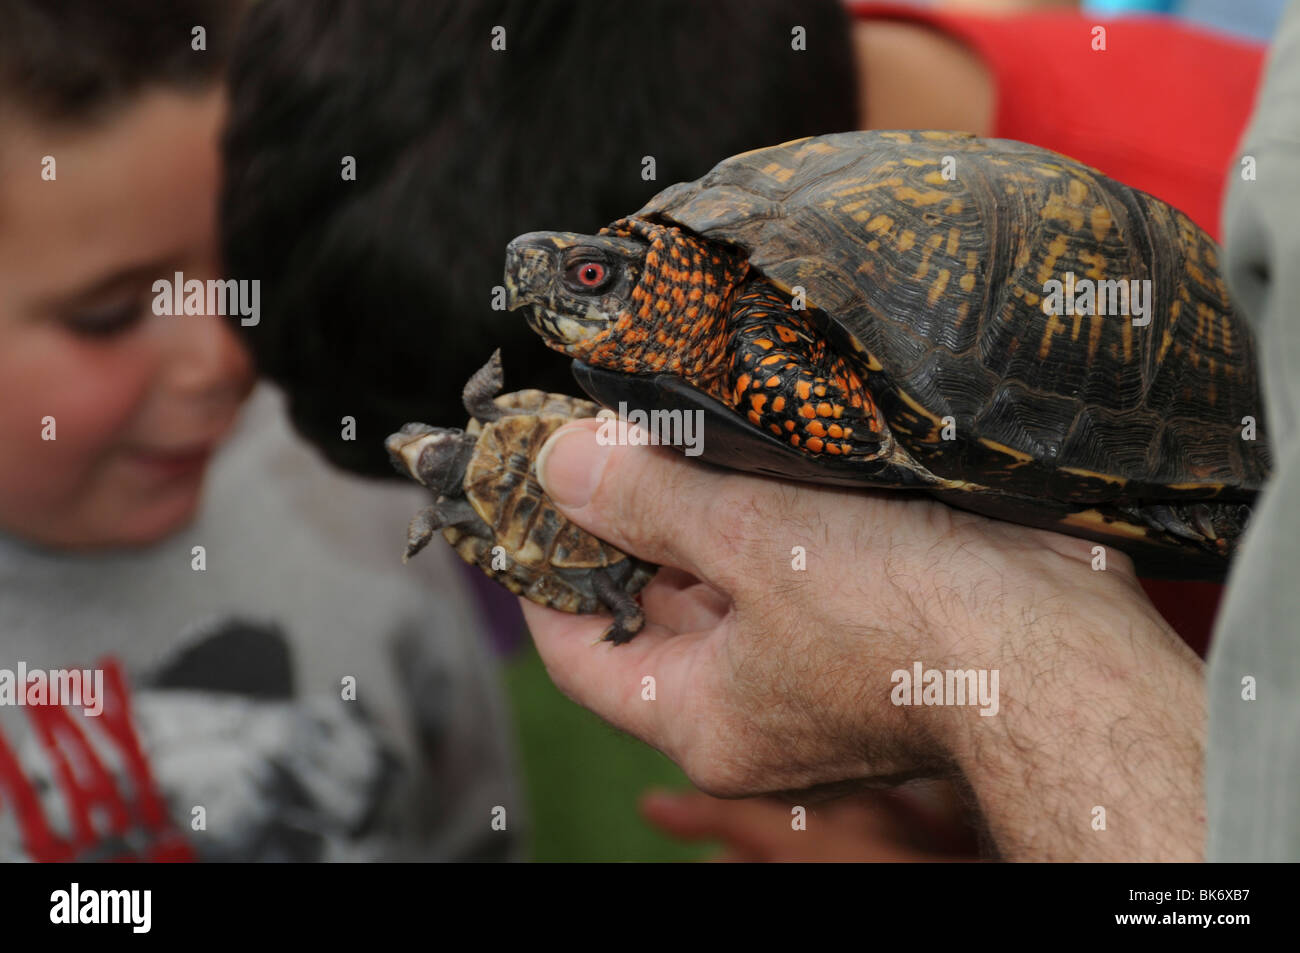 wildlife expert shows a fully grown box turtle with a baby turtle to children - Stock Image